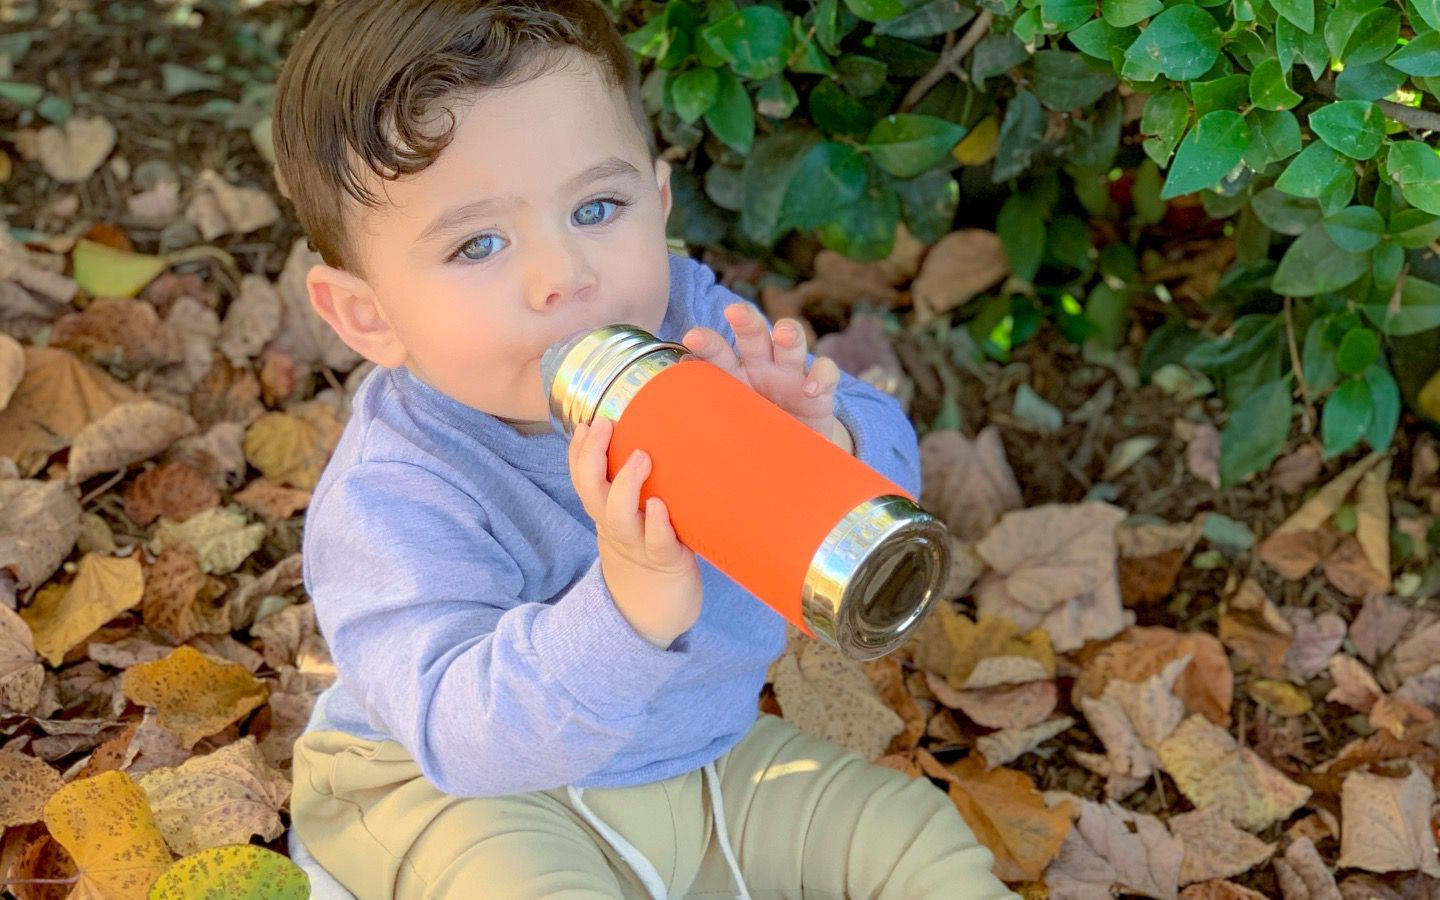 Pura insulated straw bottle